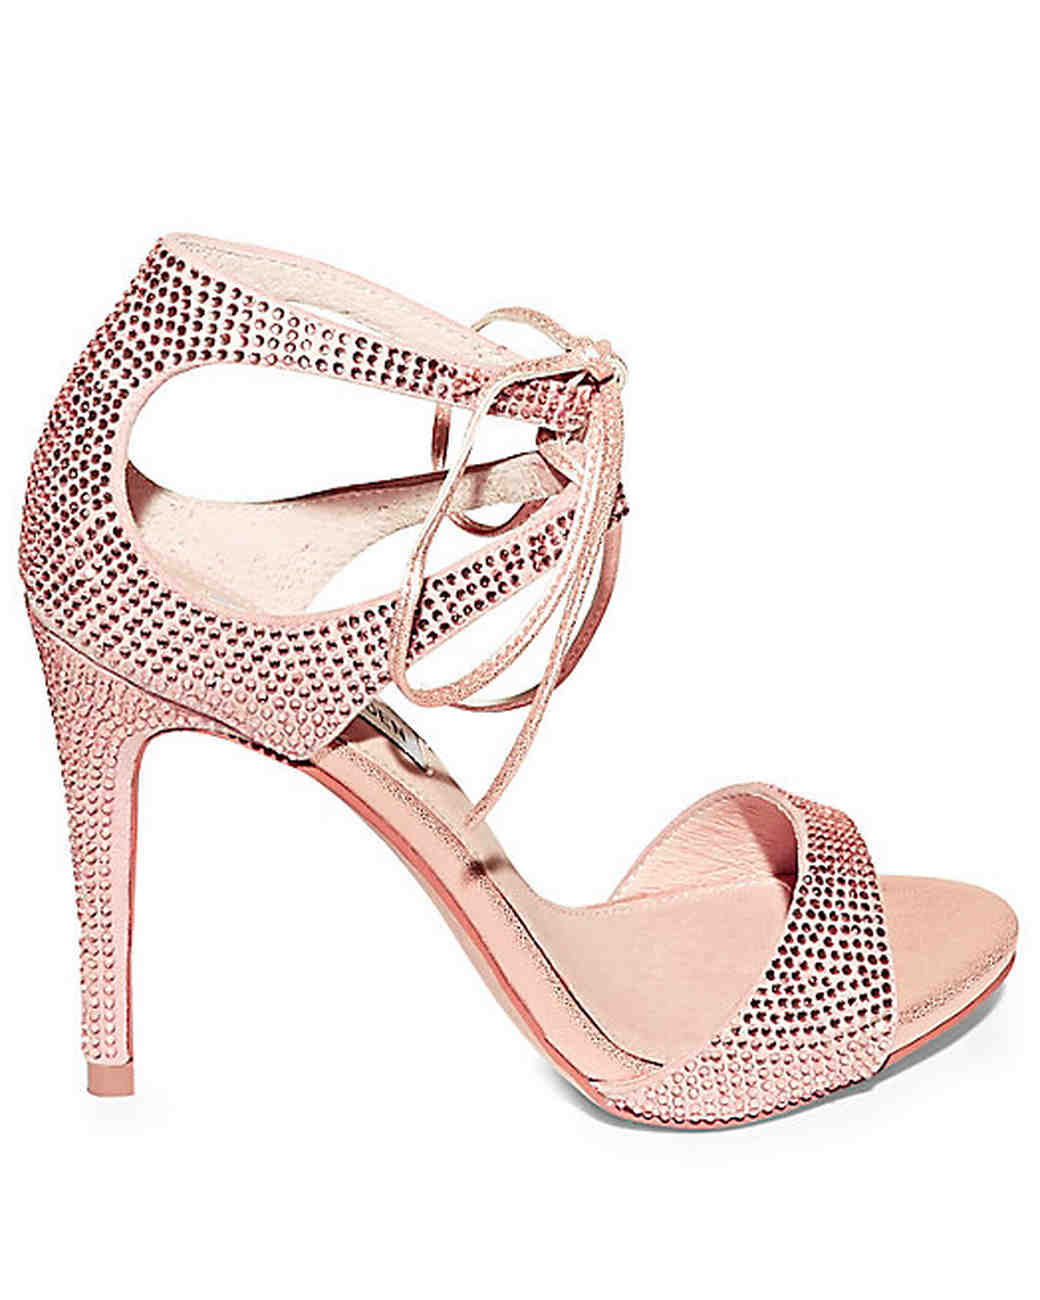 50 Best Shoes for a Bride to Wear to a Summer Wedding | Martha ...